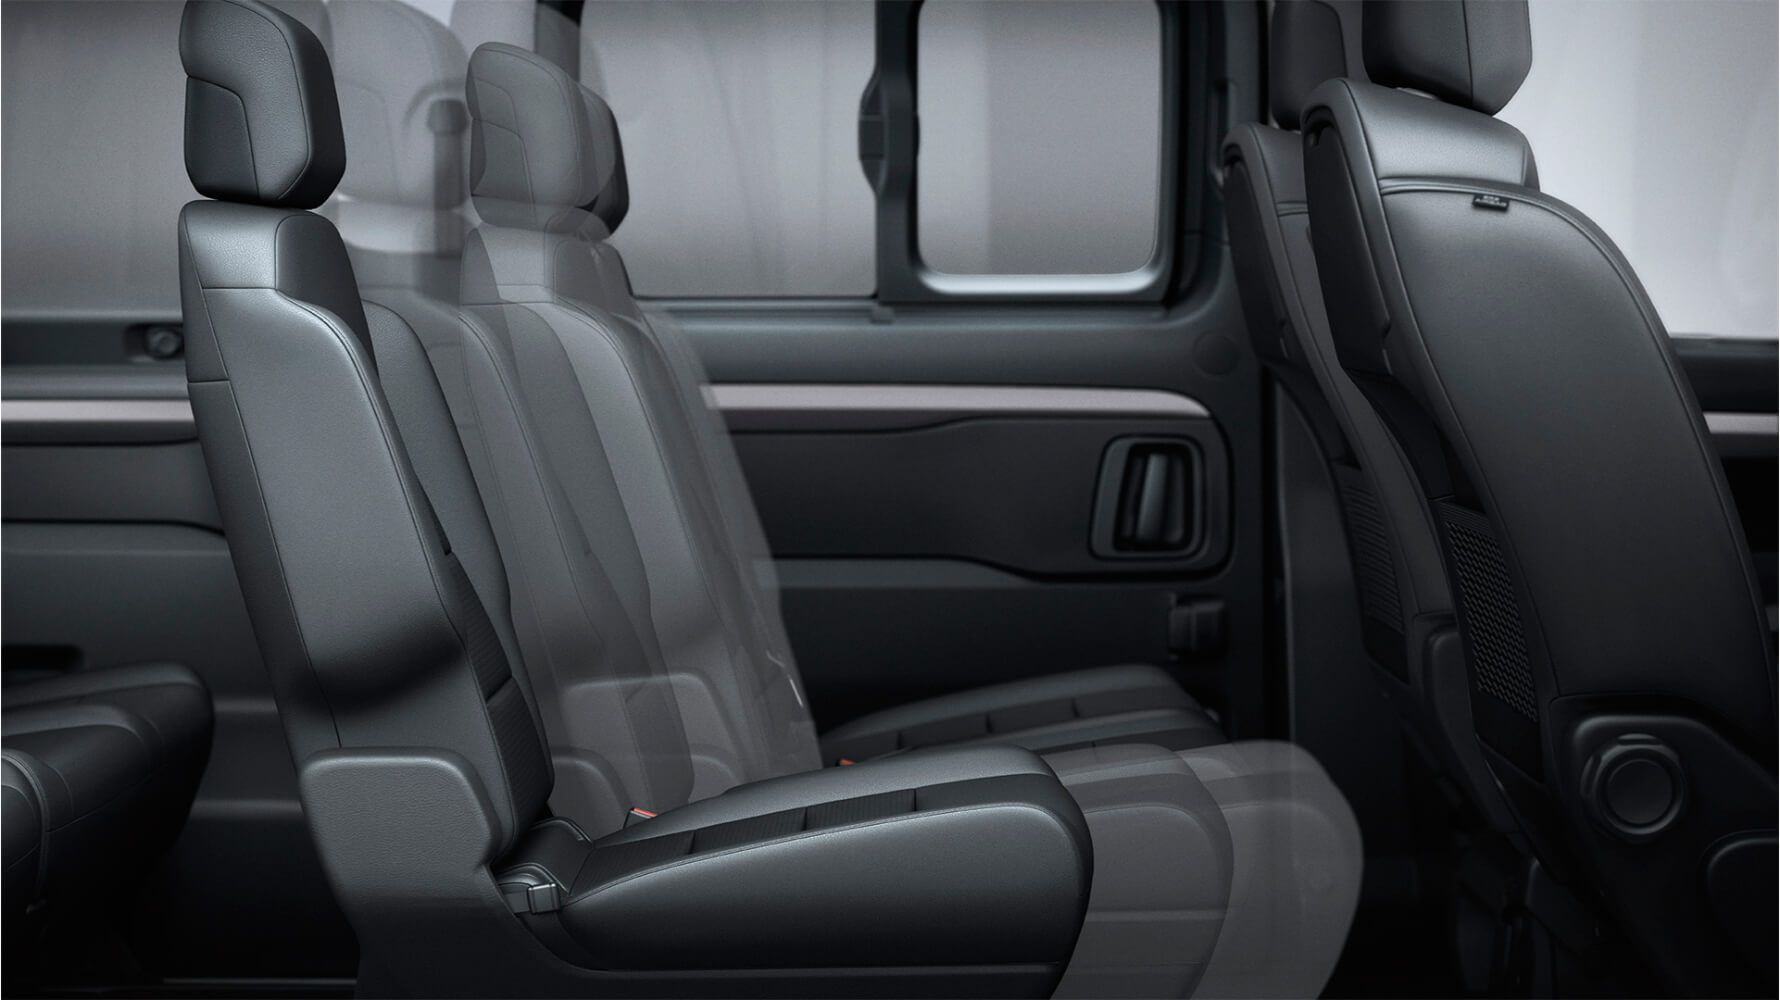 toyota_proace_verso_2019_gallery_013_full_tcm_3046_1703793